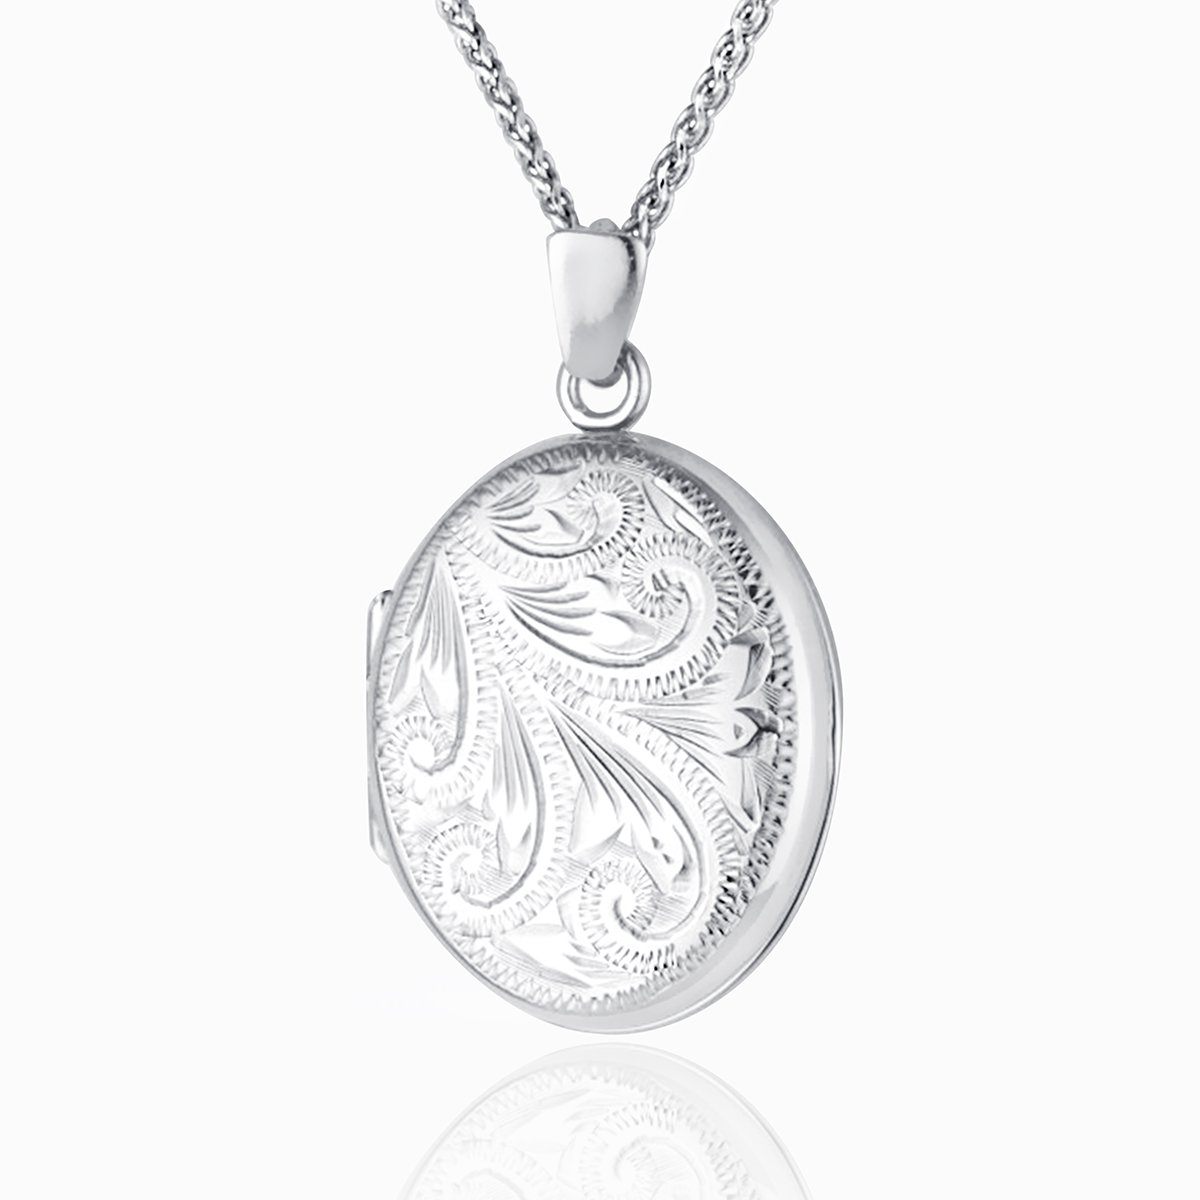 Hand Engraved White Gold Oval Locket